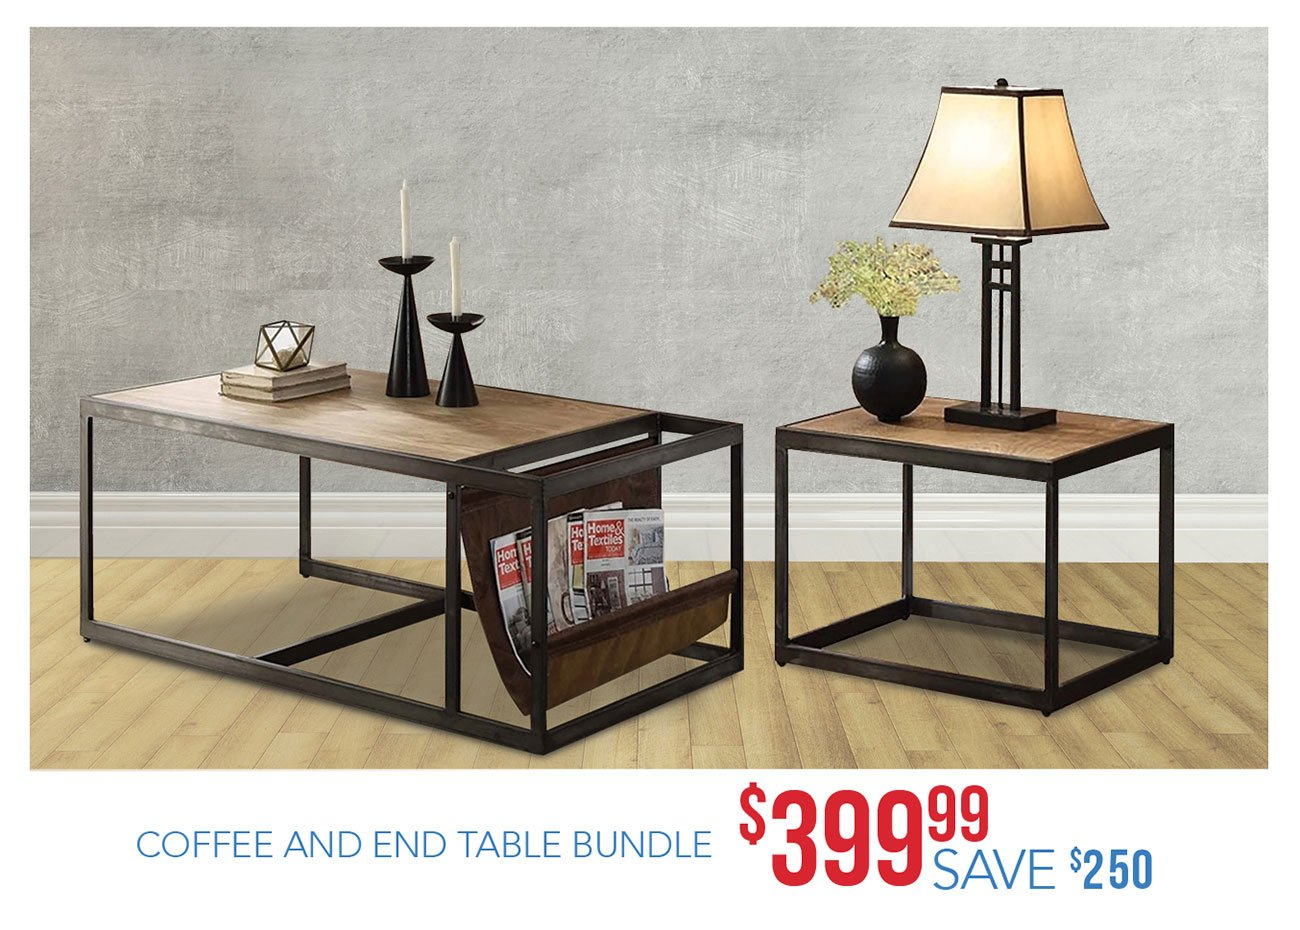 Coffee-and-end-table-bundle